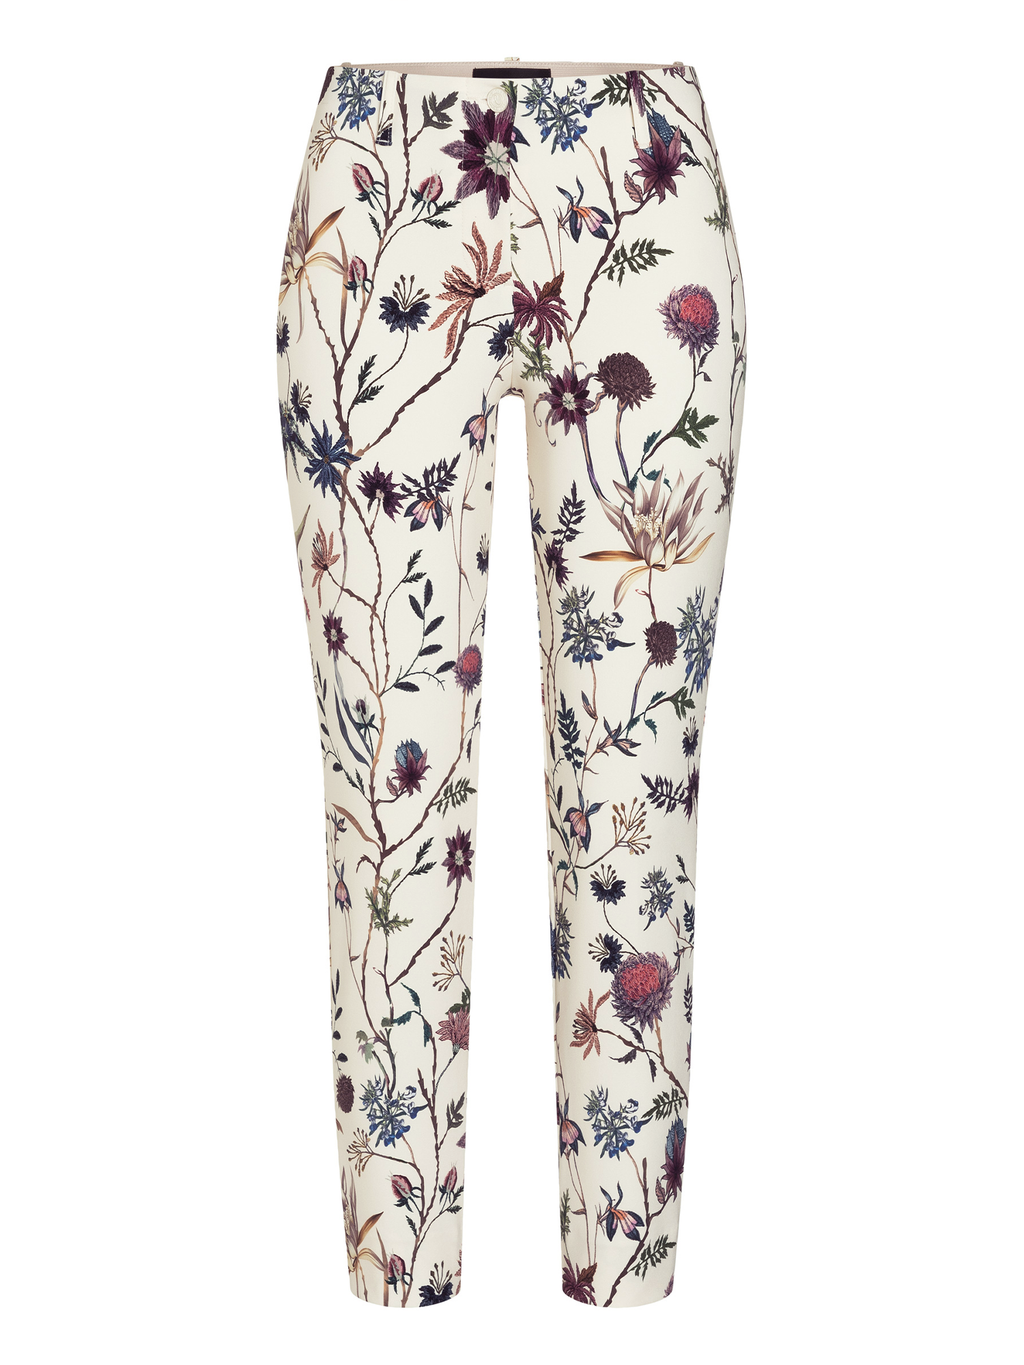 Cambio Ros Summer Floral Cropped Pant